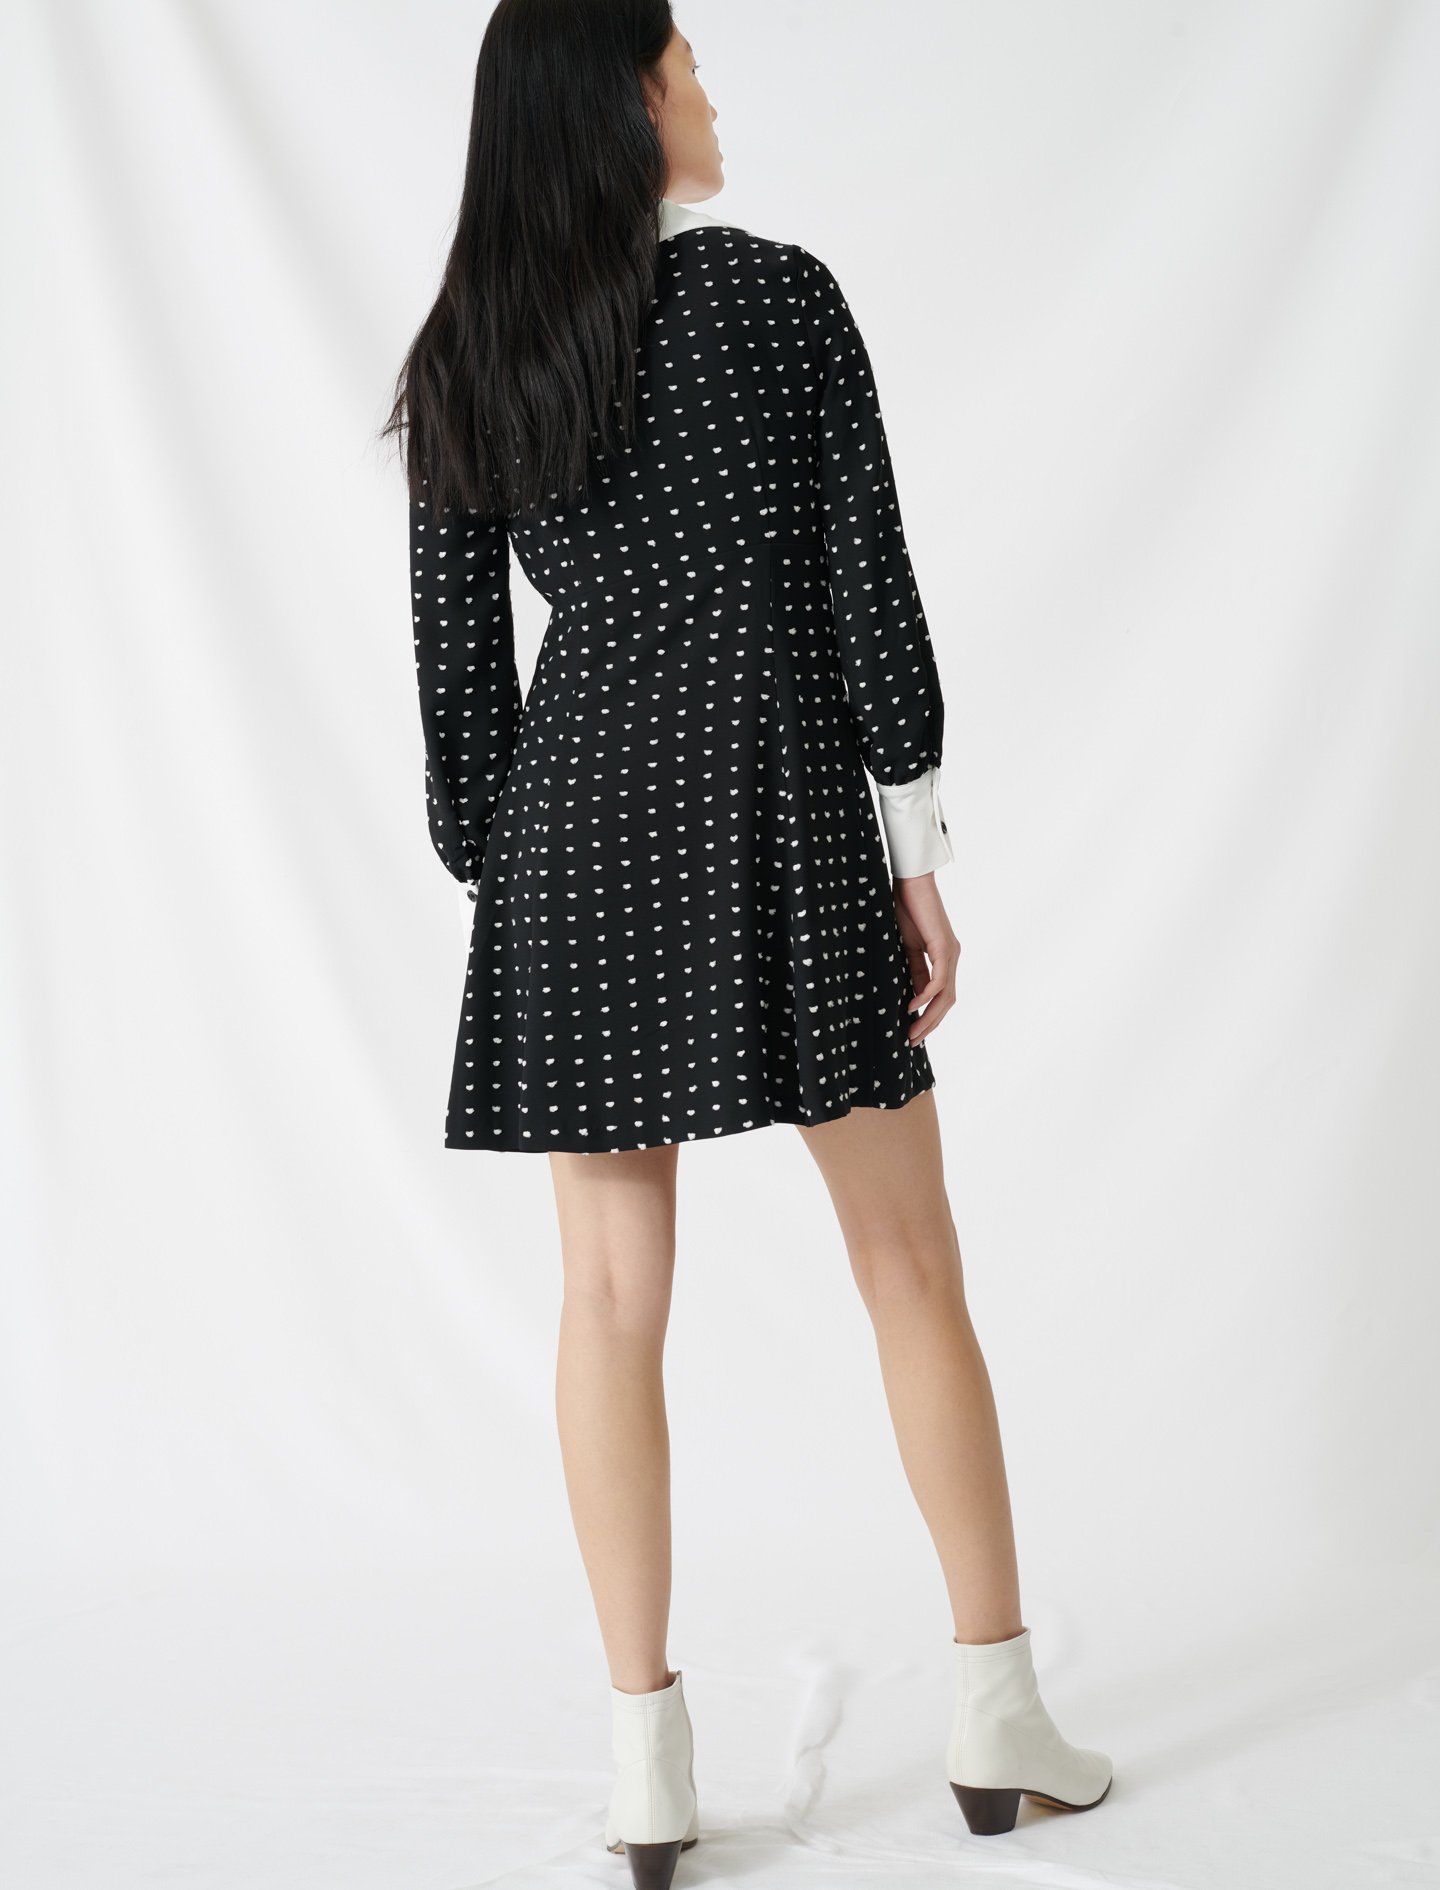 Polka dot dress with contrasting details - Multi-colour